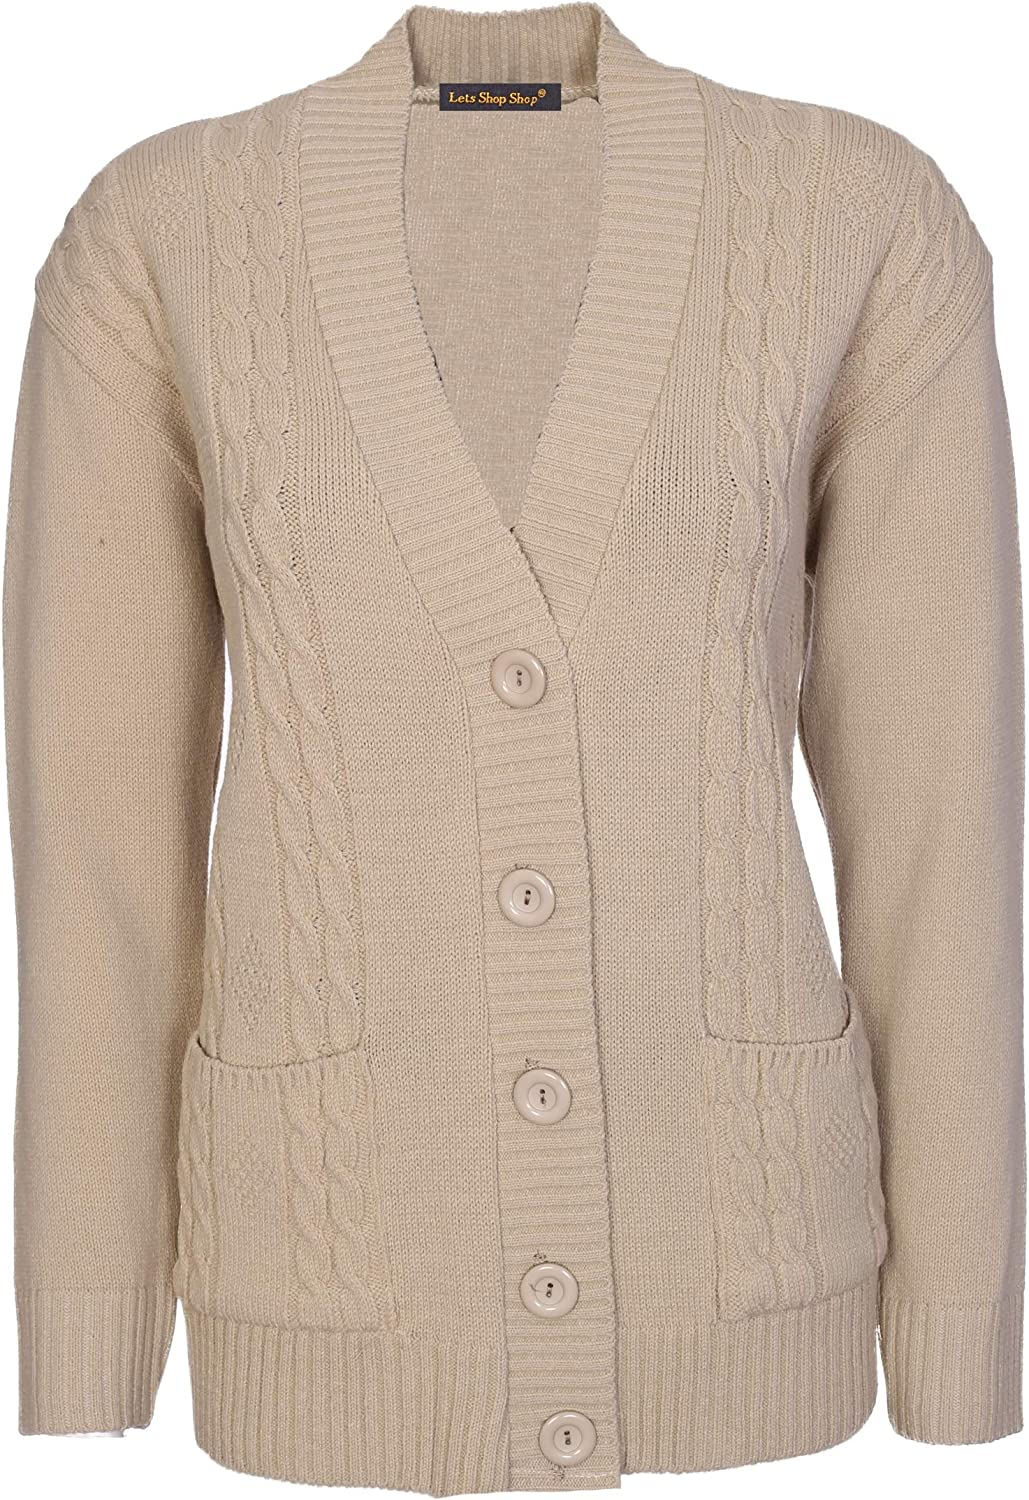 Lets Shop Shop New Classic Womens Cardigan Ladies Sizes 10-20 Cable Knit Long Sleeve Aran Type Grandad Button Down Pockets Sweater